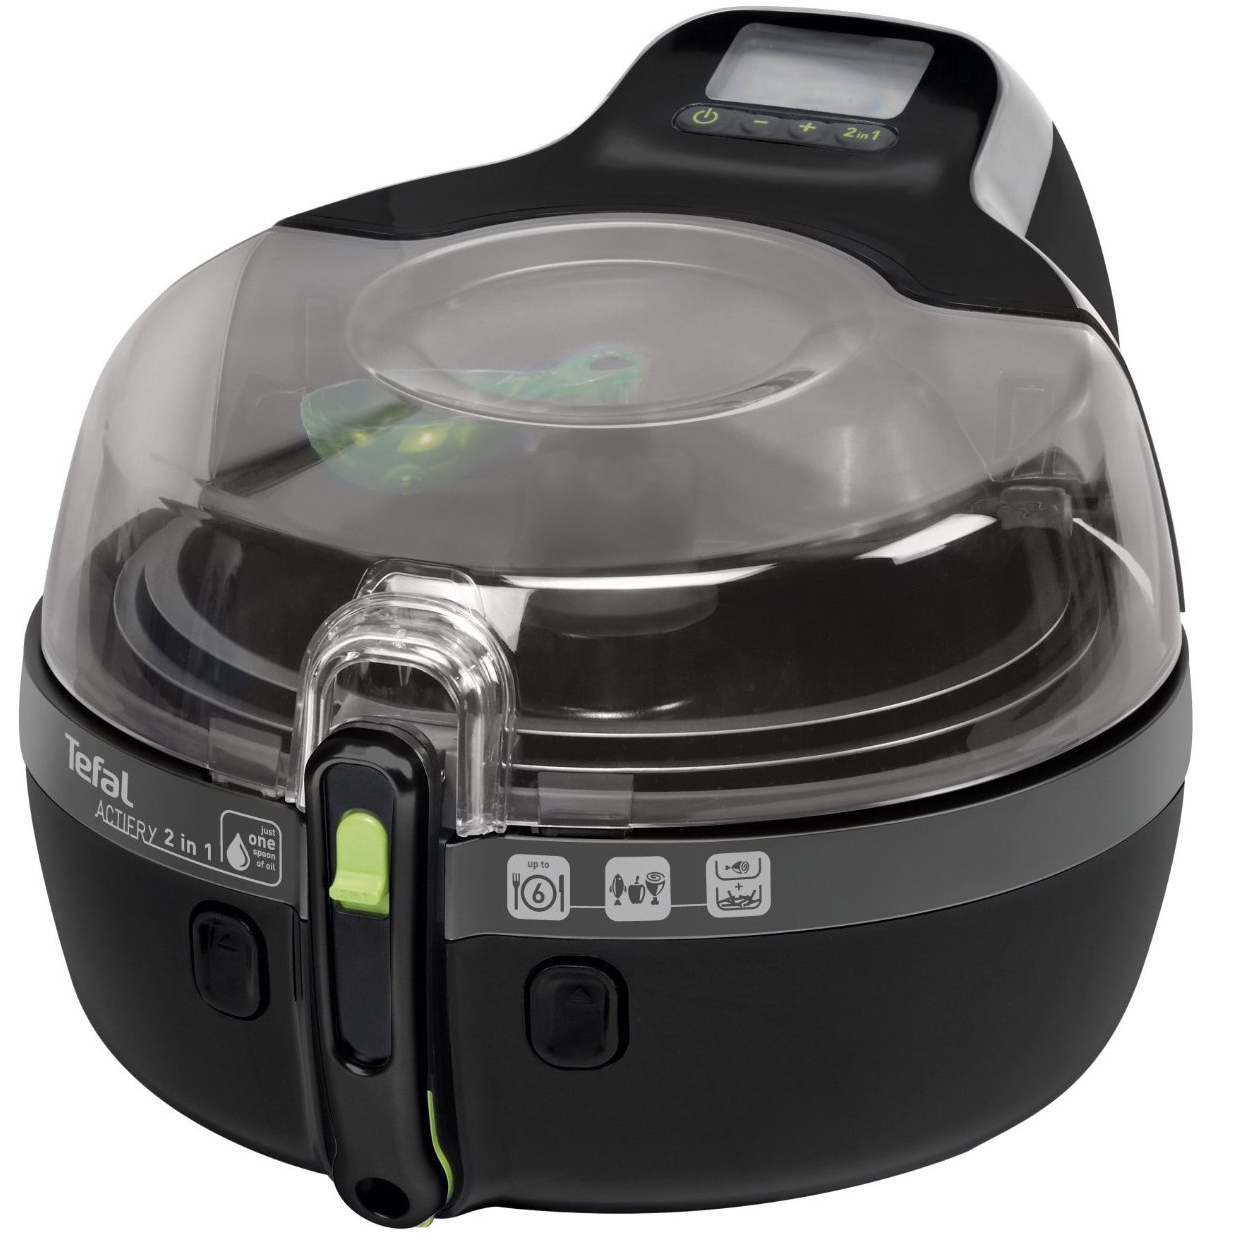 Tefal-actifry2-button